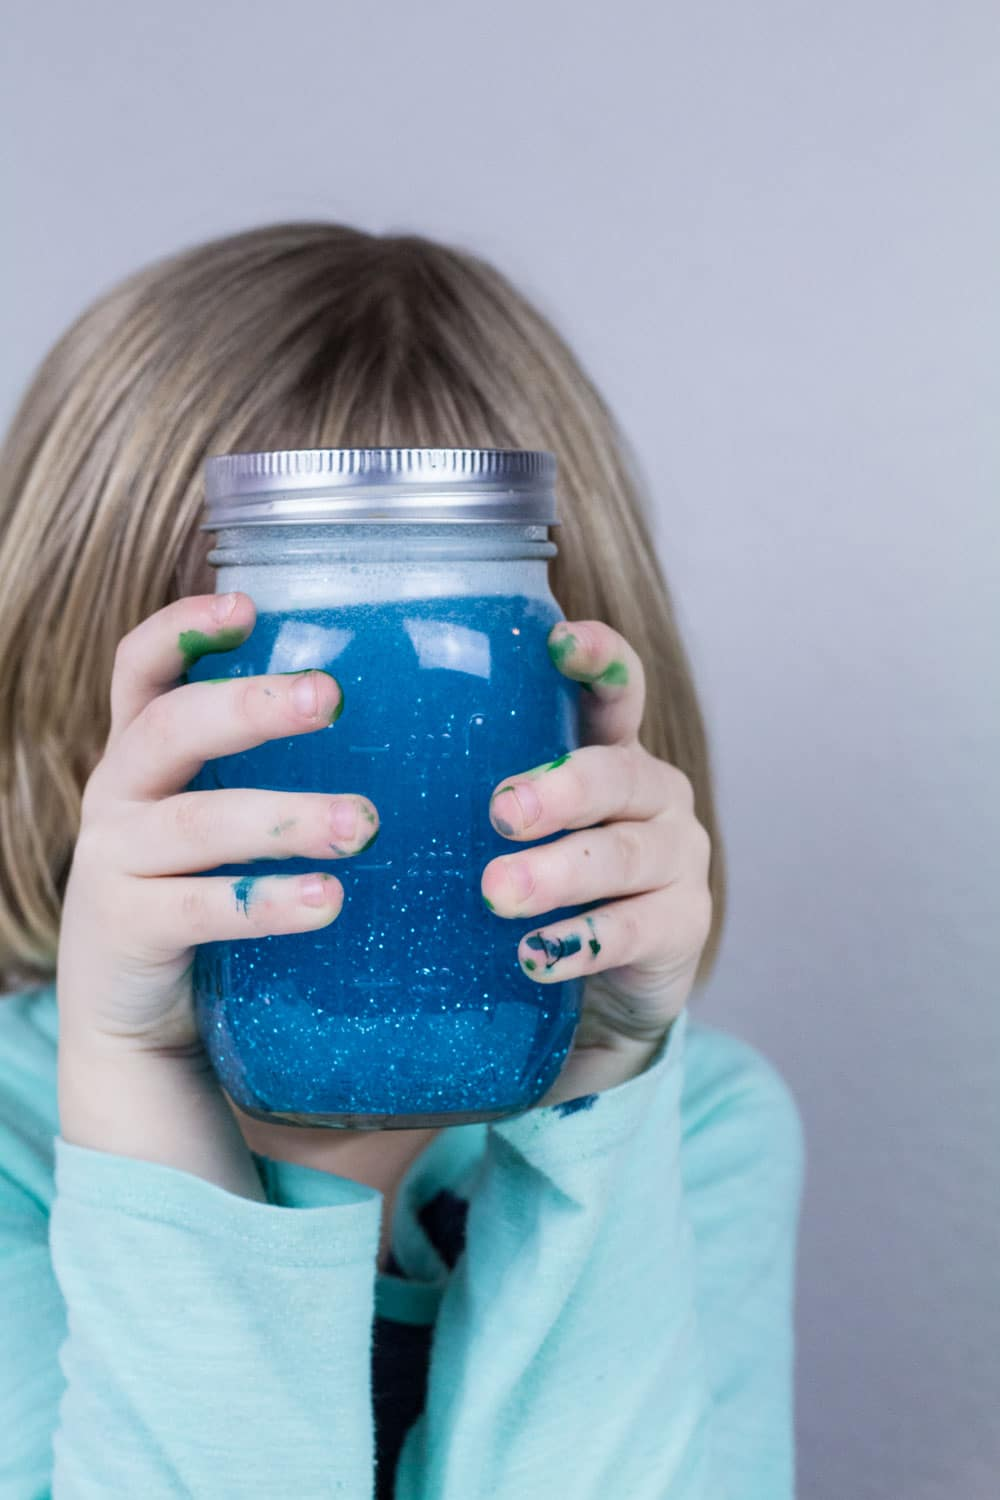 Learn about science with a tornado in a jar! This tornado in a jar lesson plan is so easy and an excellent way to learn about centripetal force and makes an excellent tornado science project. Use our tornado in a jar worksheet to complete the glitter tornado science activity! #stemactivities #scienceexperimentsforkids #science #stem